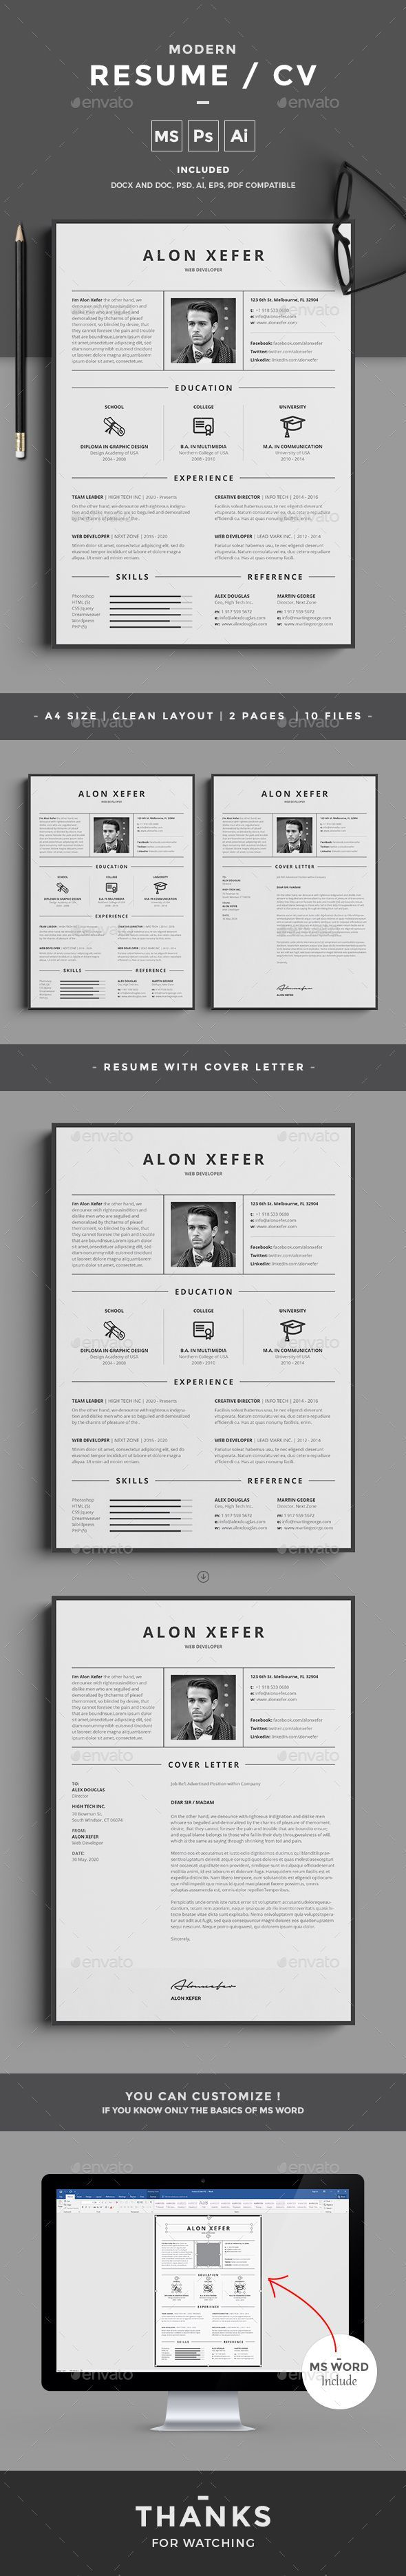 mac pages resume templates%0A Resume